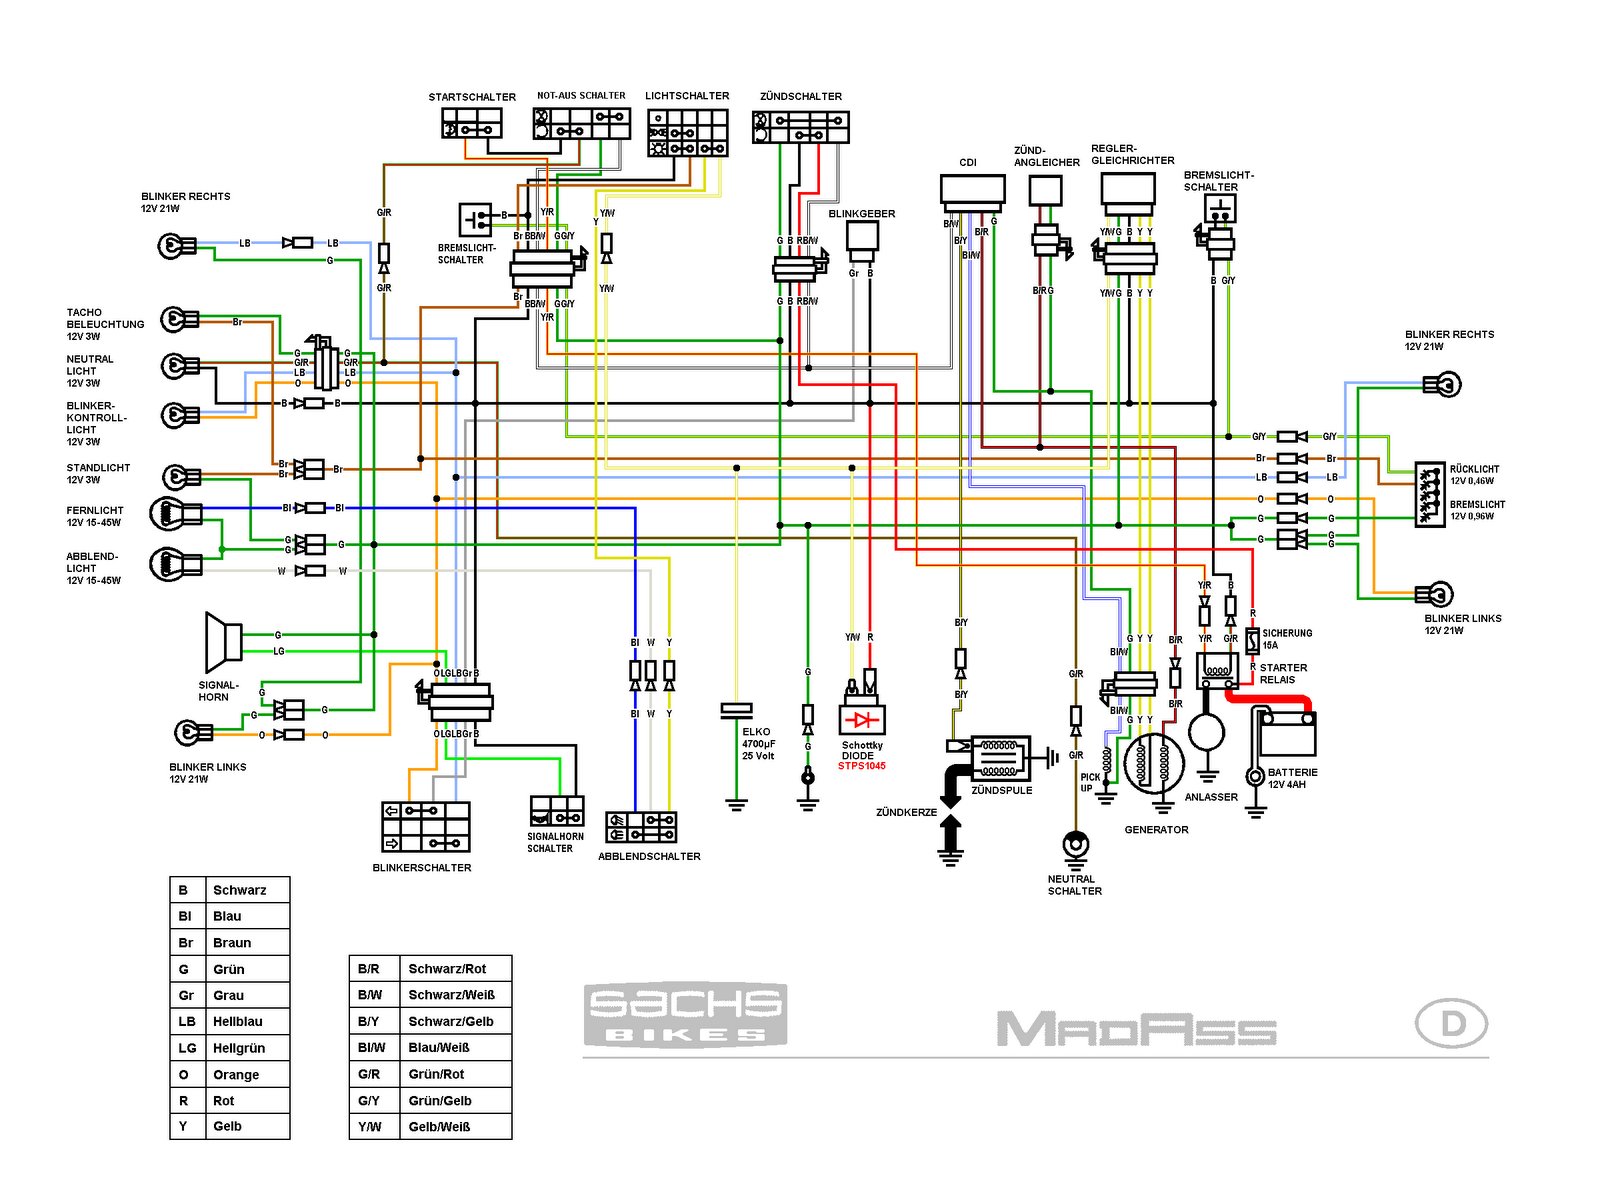 suzuki gsxr 600 wiring diagram ko 1764  2007 gsxr 1000 wiring diagram ignition free diagram  2007 gsxr 1000 wiring diagram ignition